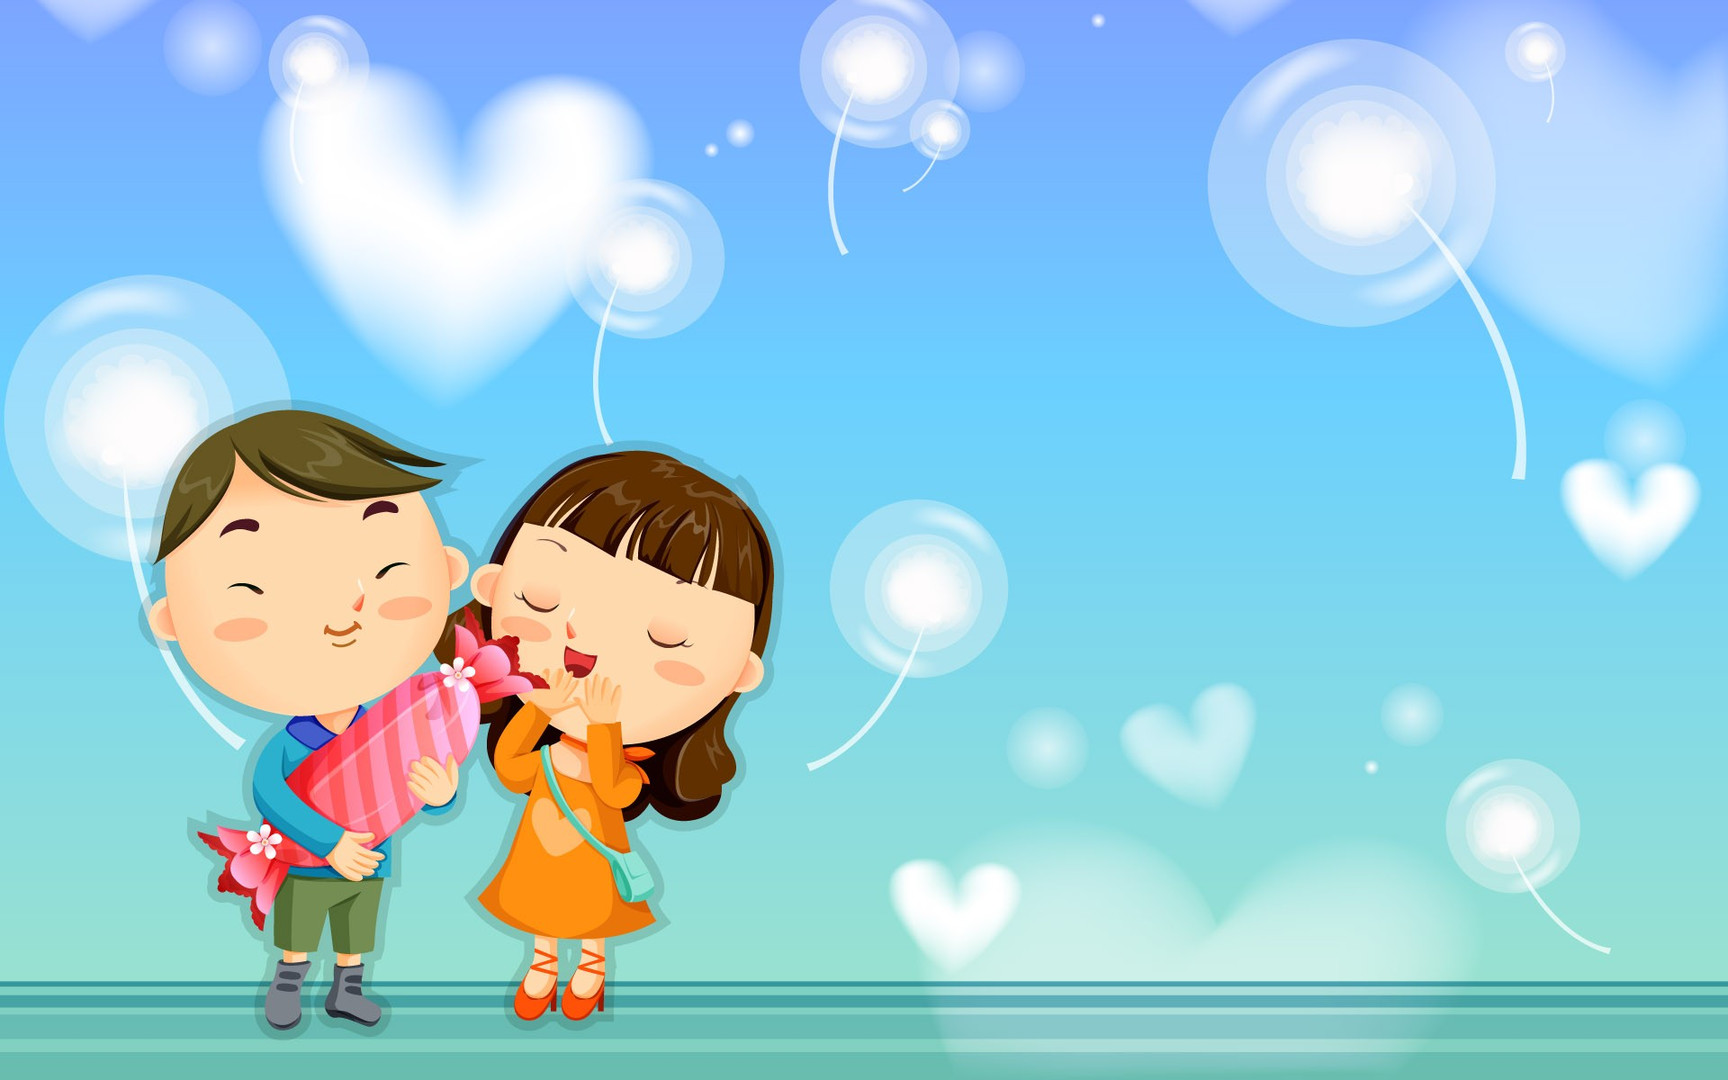 Love Wallpaper In cartoon : cartoon Love Wallpapers - Wallpaper, High Definition, High ...